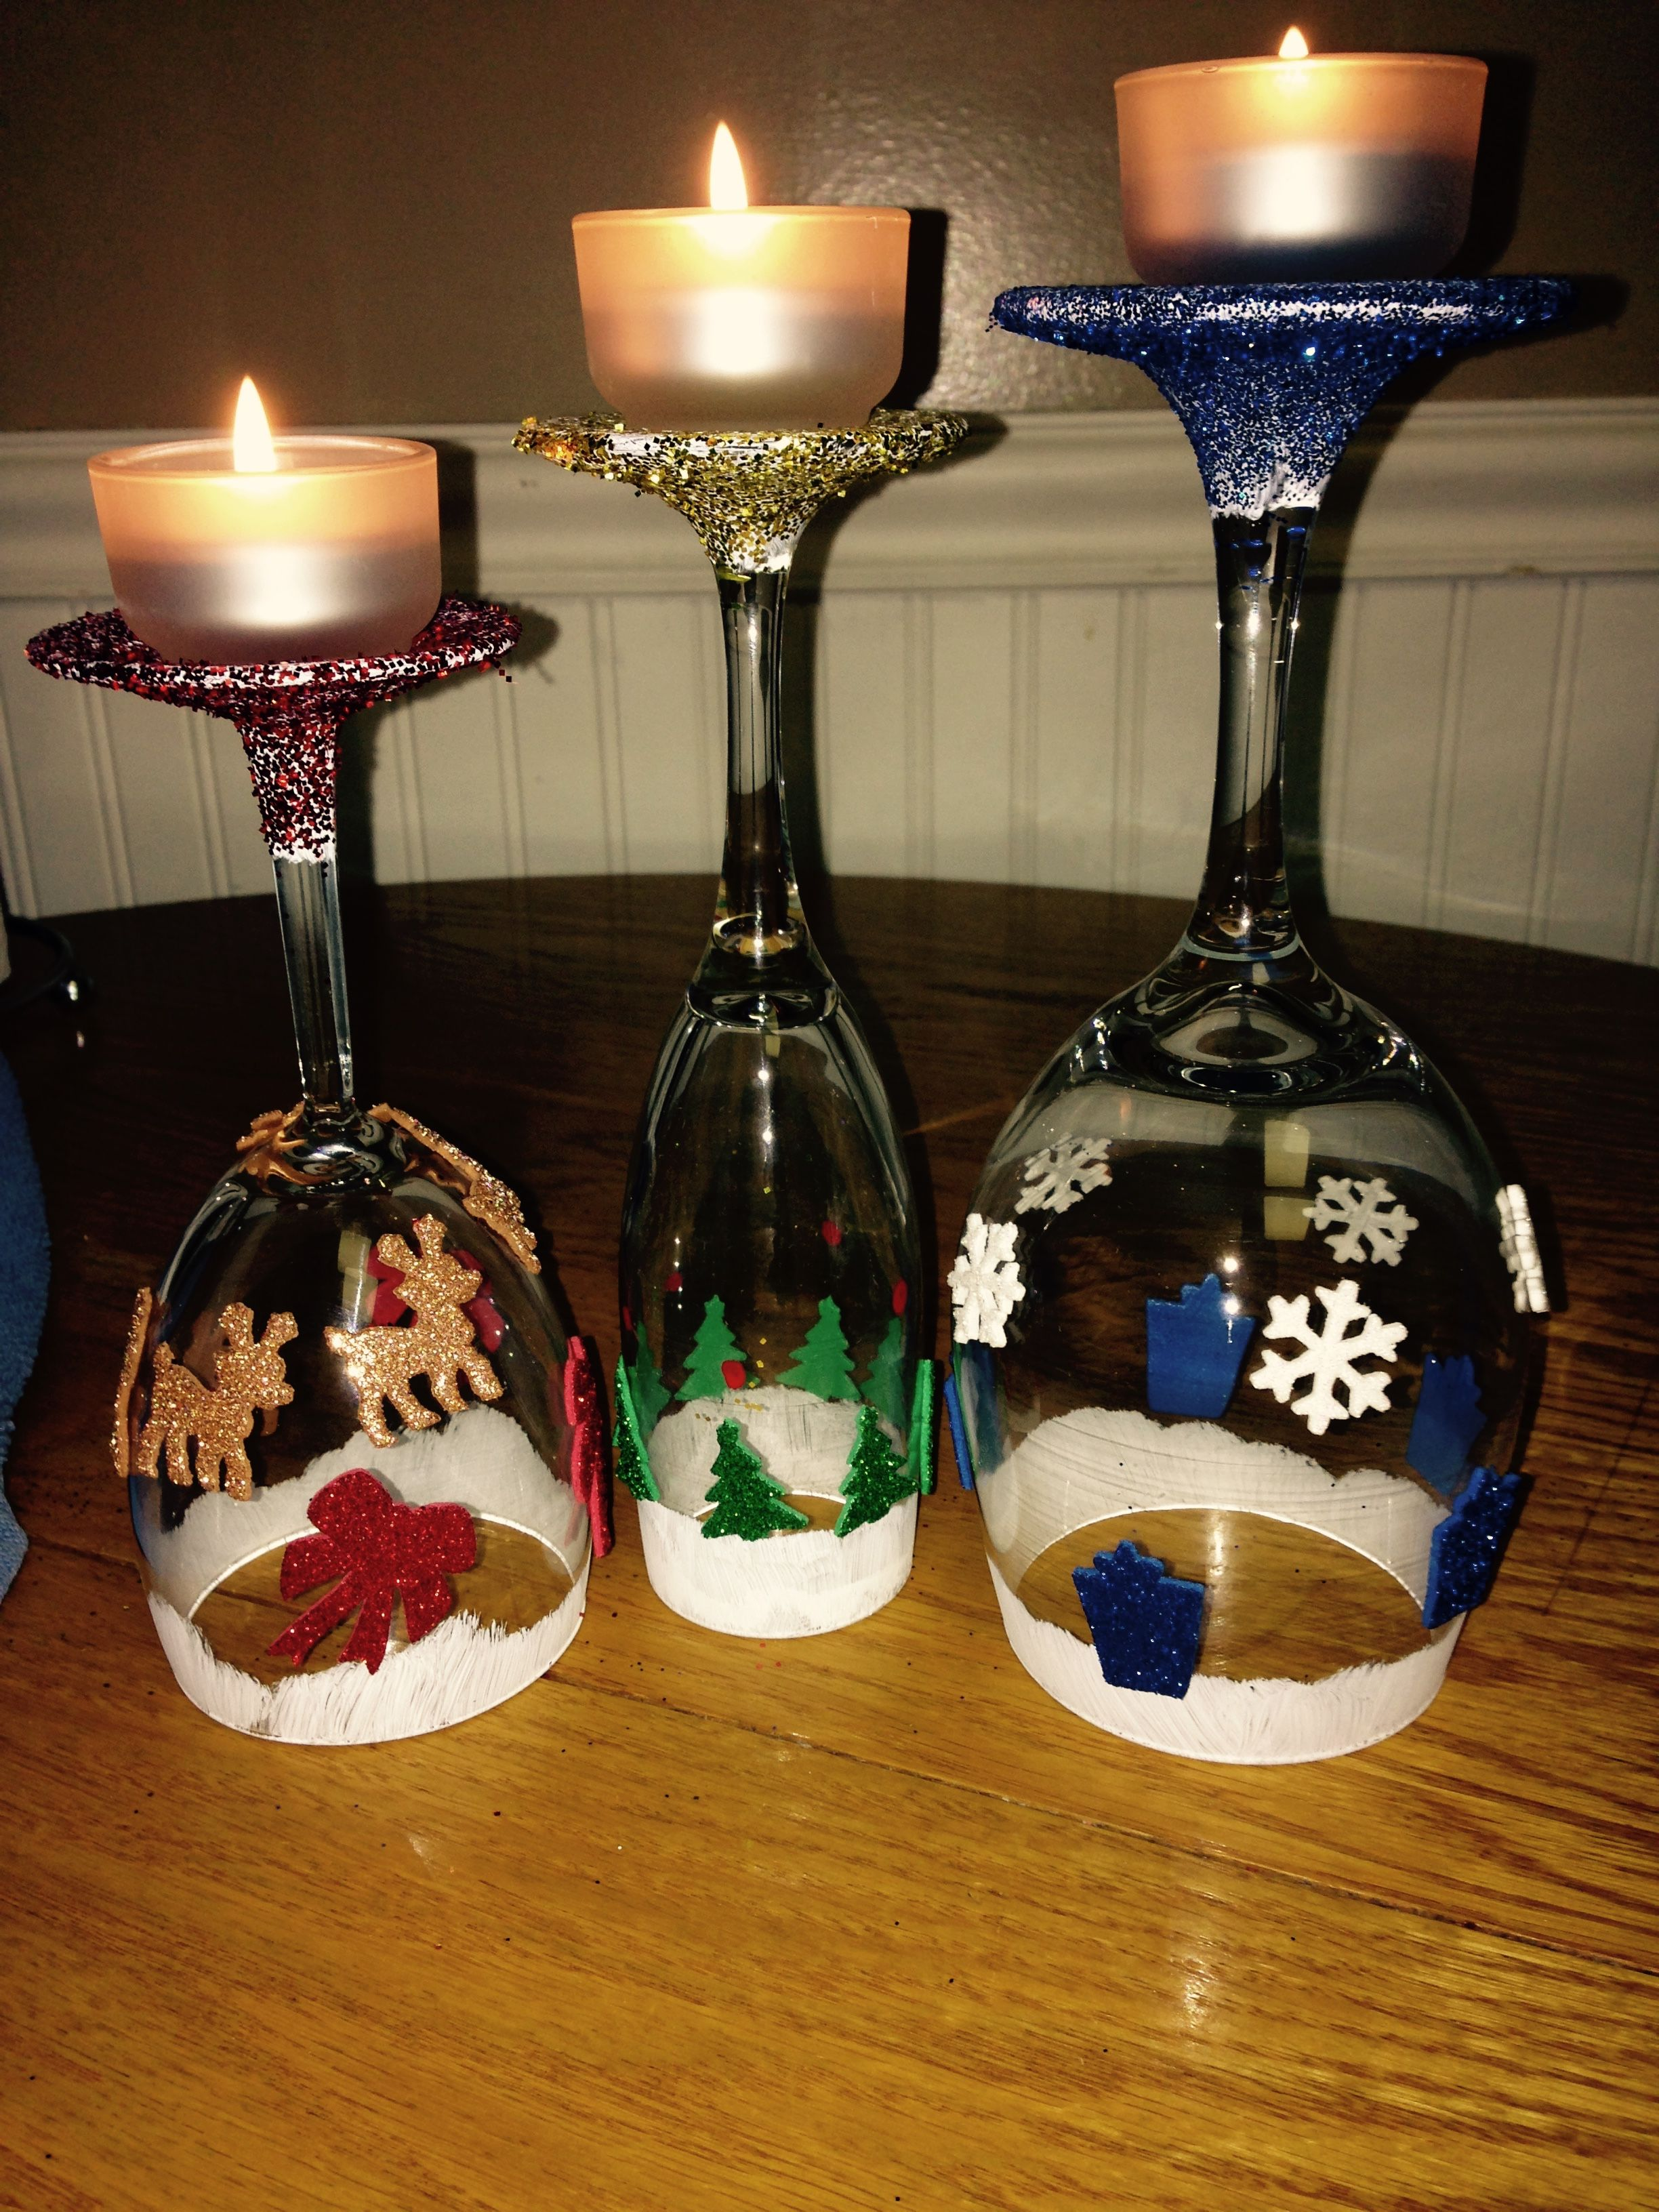 Sarah made these wine glasses upside down into candle for Holiday wine glass crafts